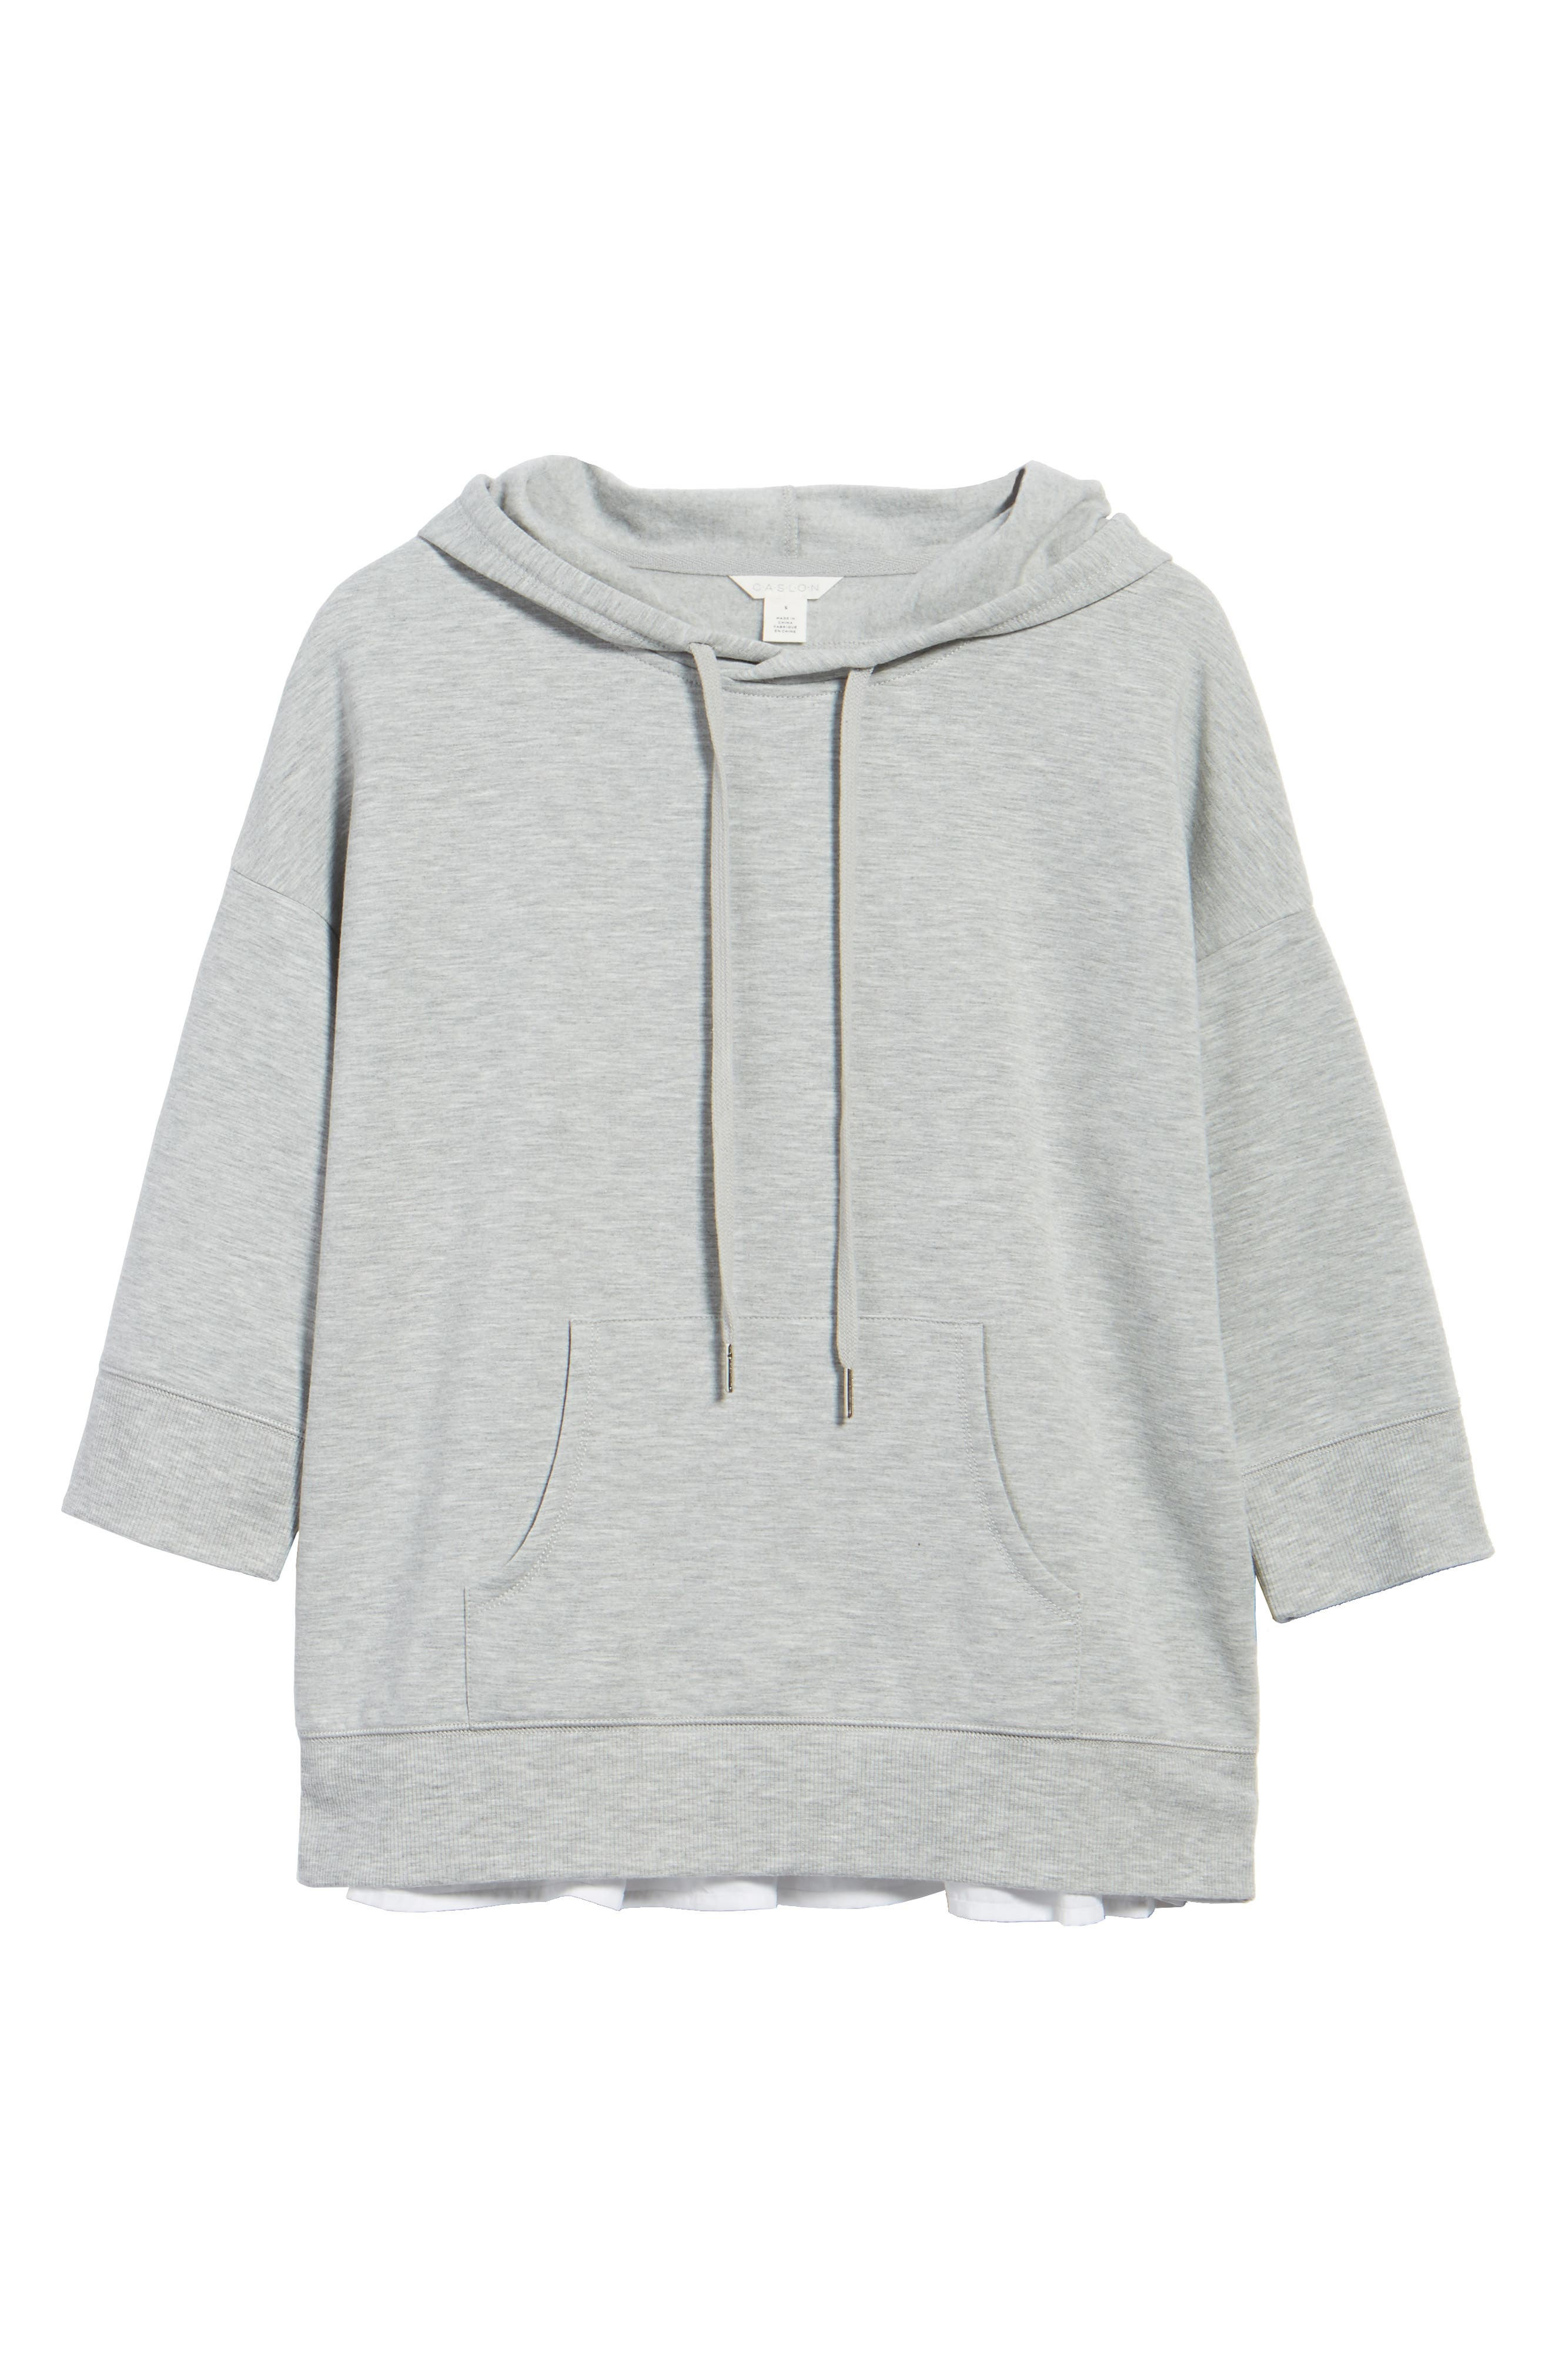 Woven Inset Knit Hoodie,                             Alternate thumbnail 6, color,                             030